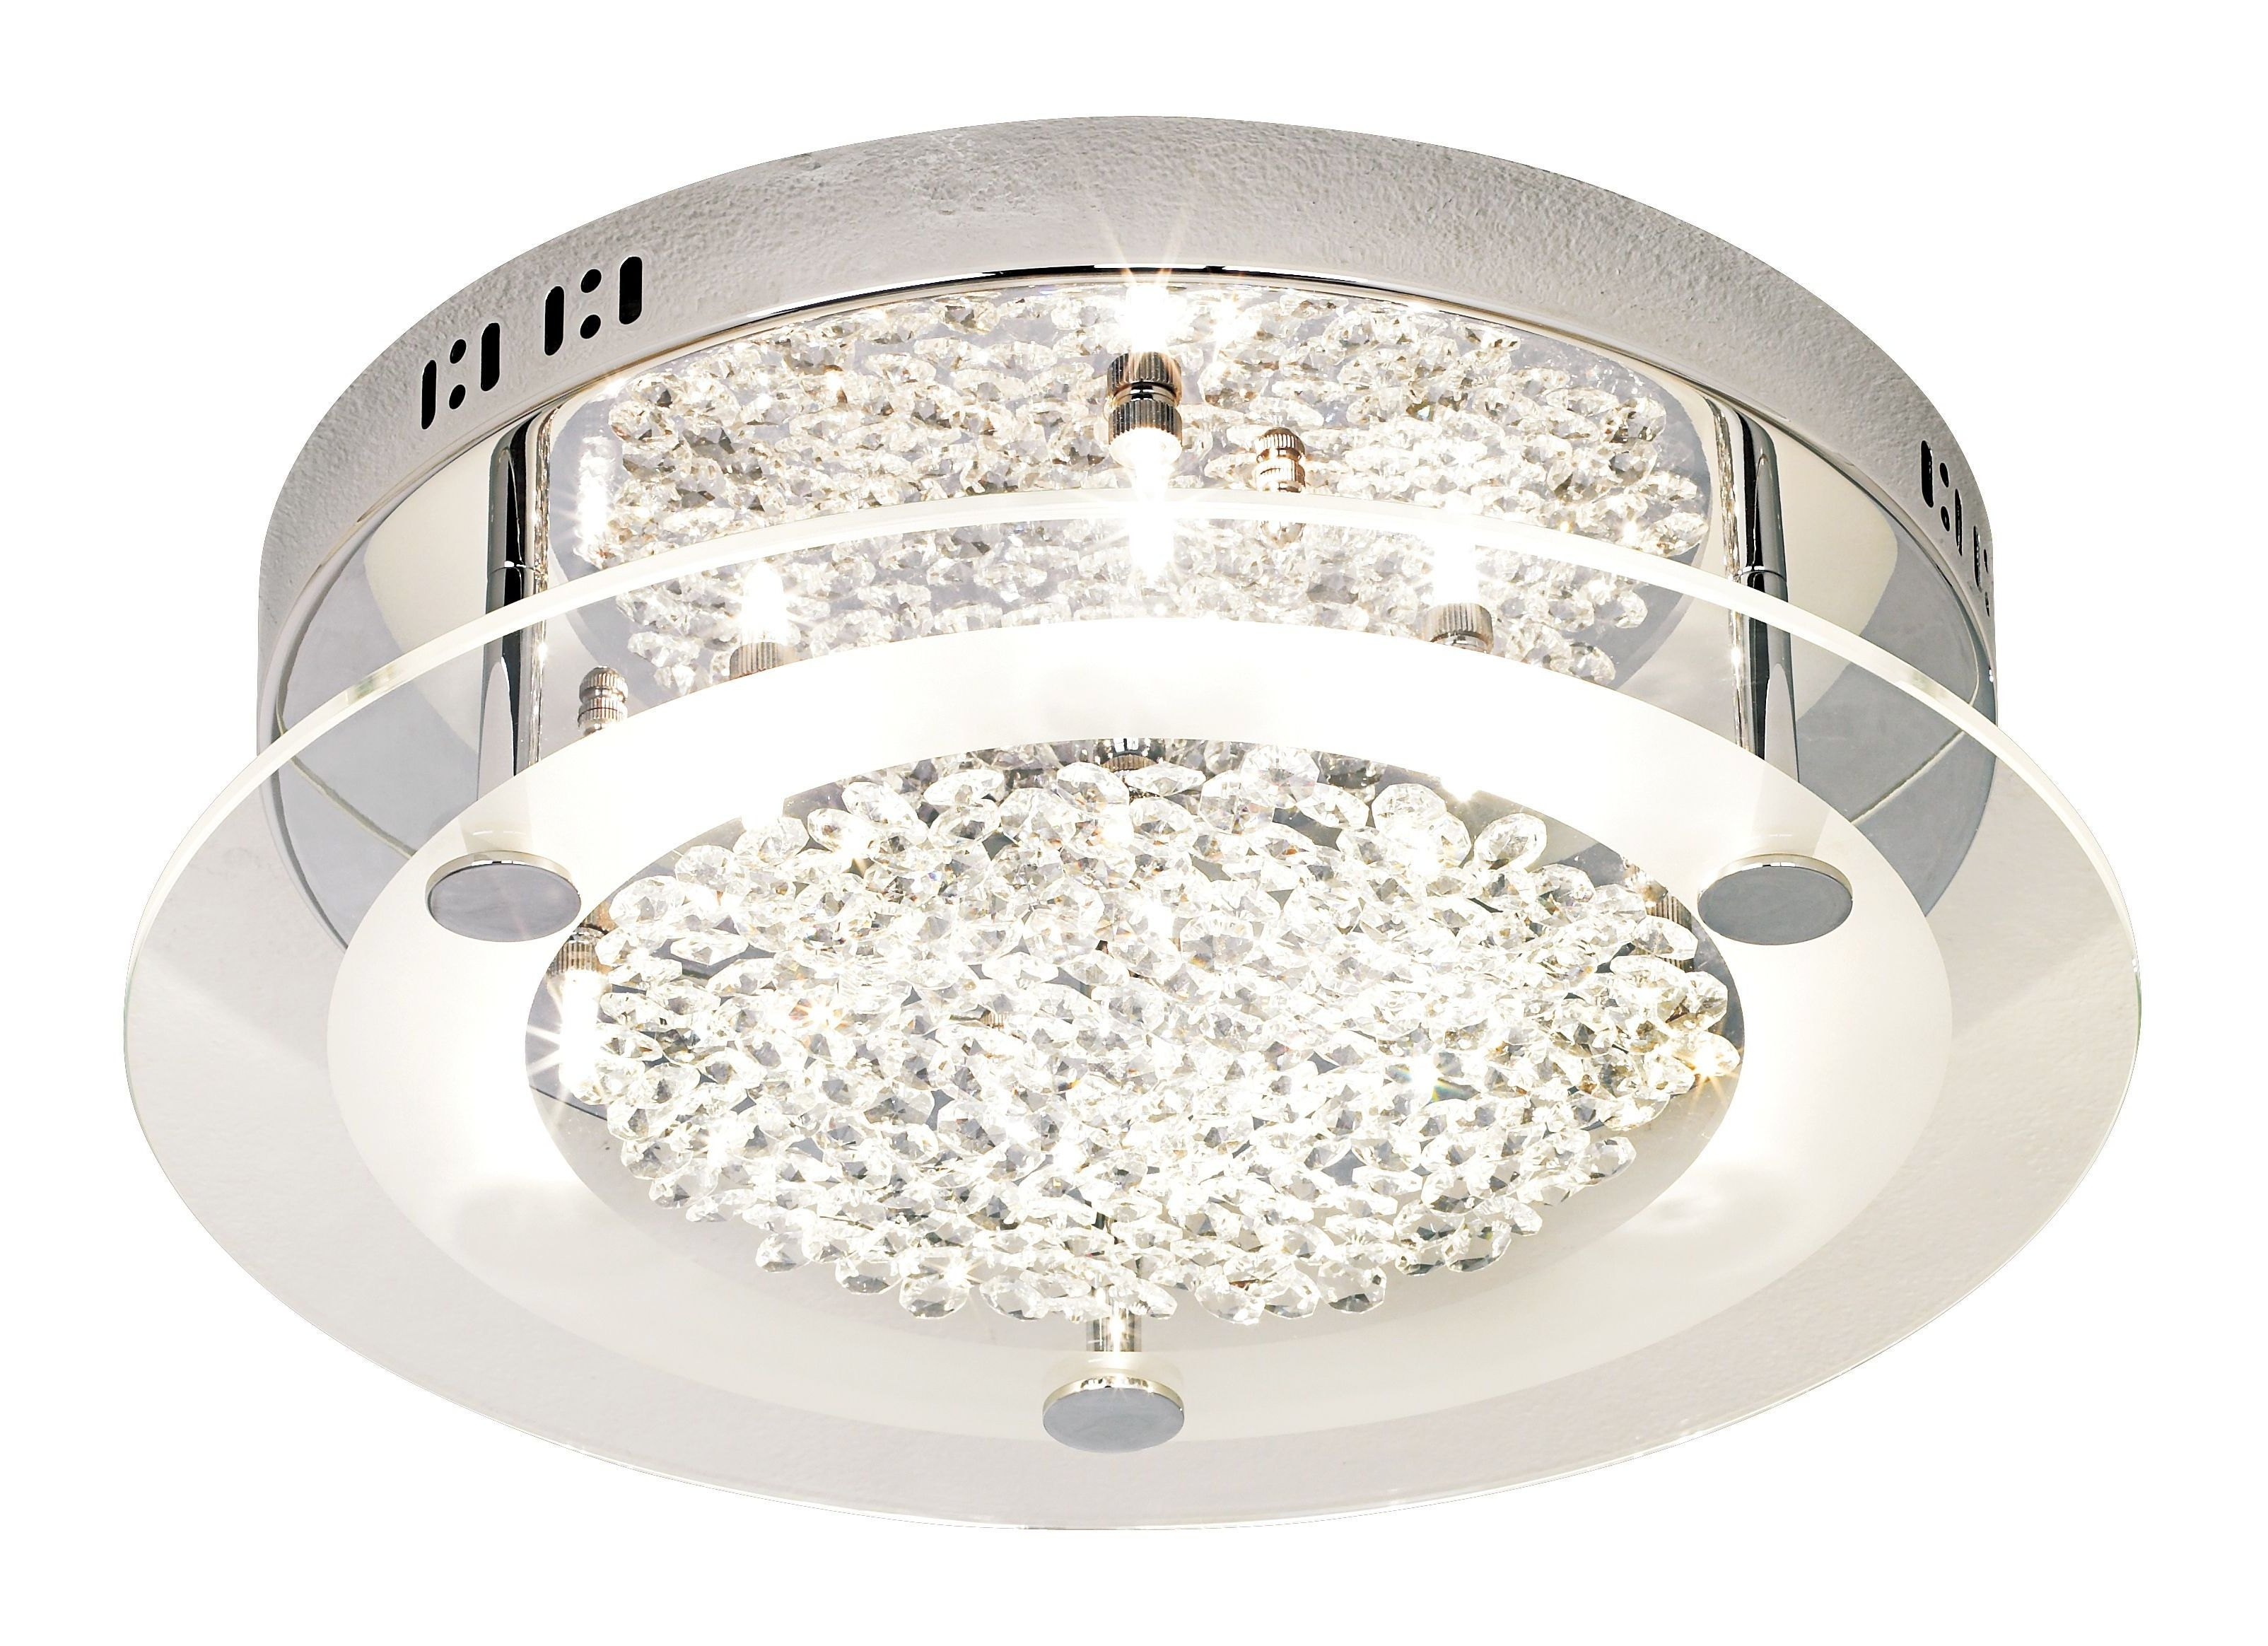 Chandelier Bathroom Ceiling Lights With Regard To Famous Stunning Bathroom Exhaust Fan With Light And Timer (View 6 of 20)